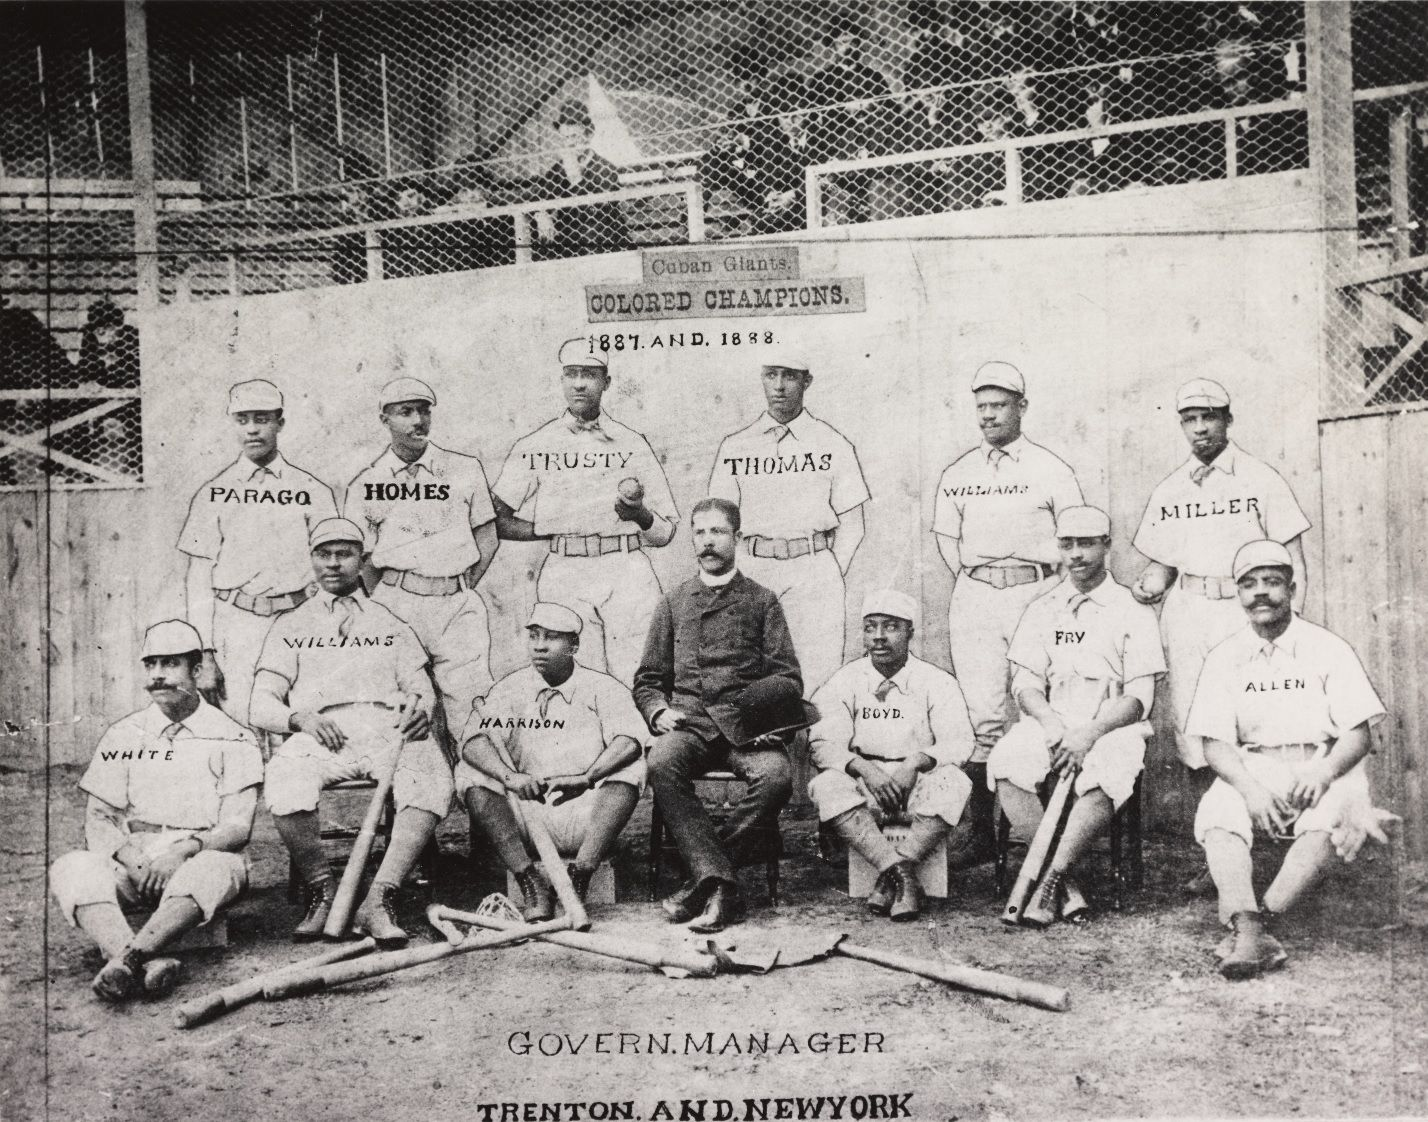 Cuban Giants, 1887–1888, photographer unknown, National Baseball Hall of Fame